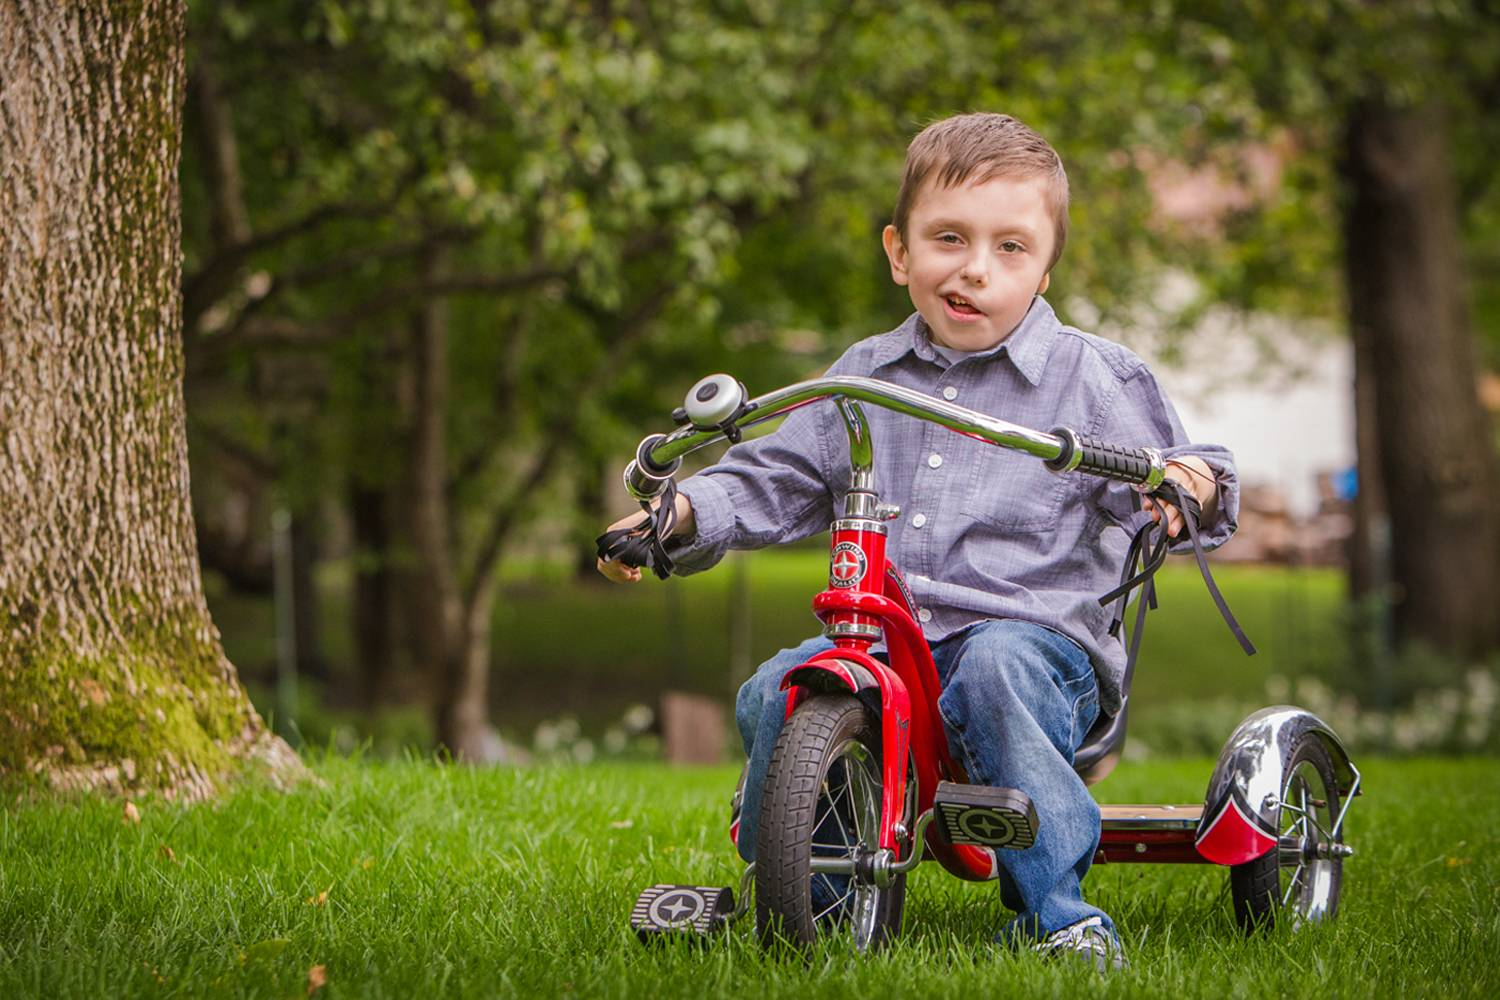 Bentley at home on his shiny red bike.